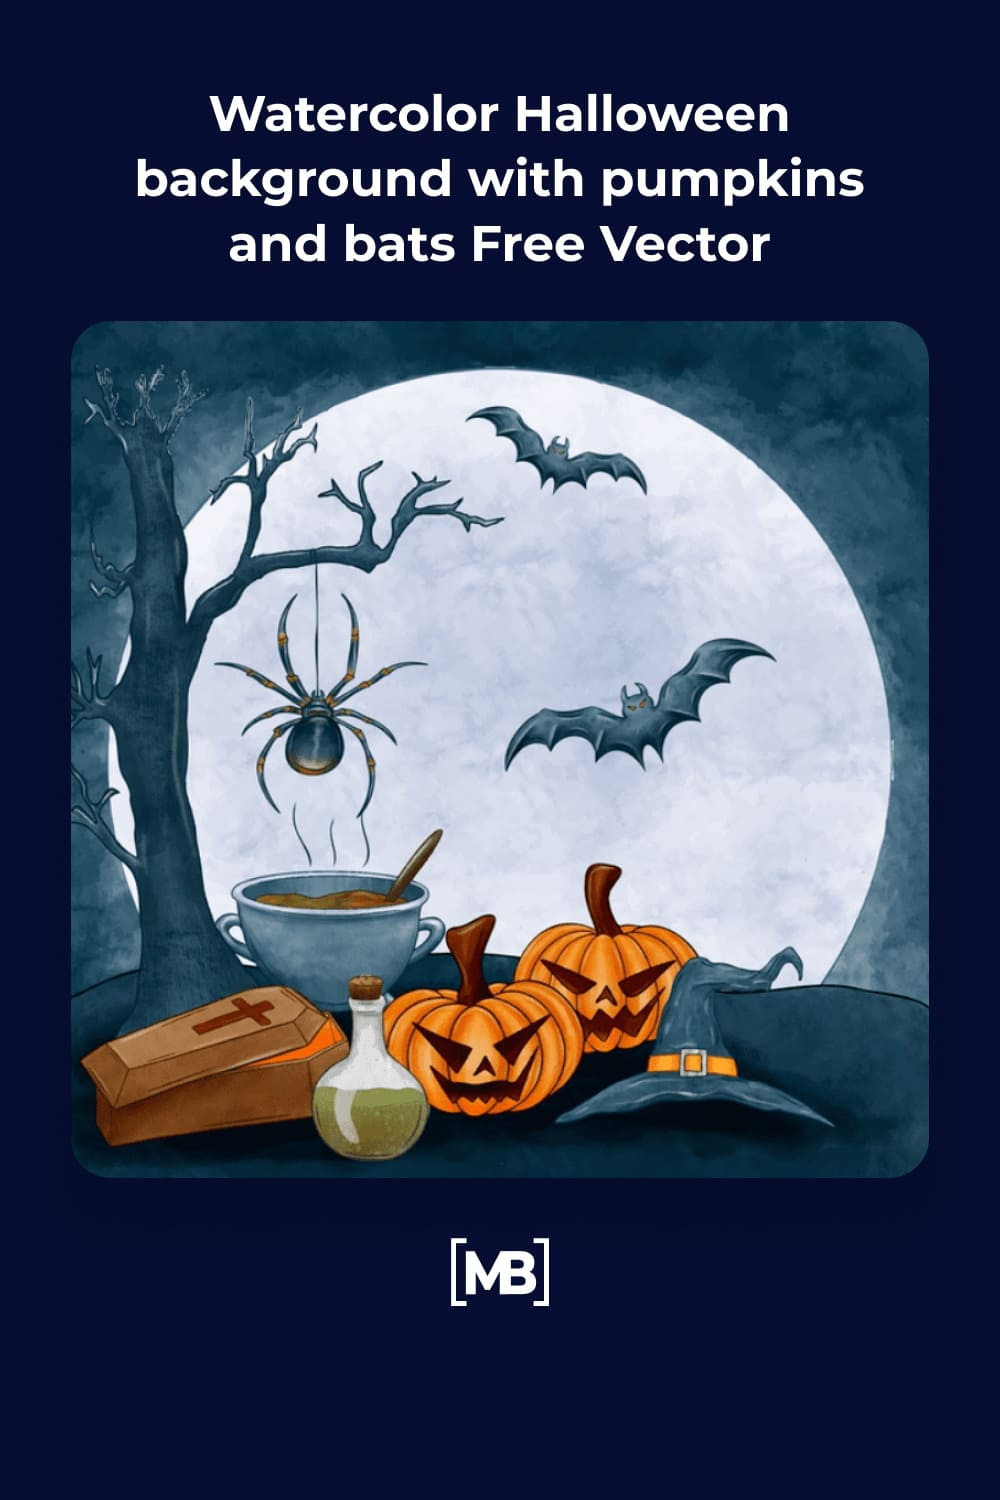 3 Watercolor Halloween background with pumpkins and bats Free Vector